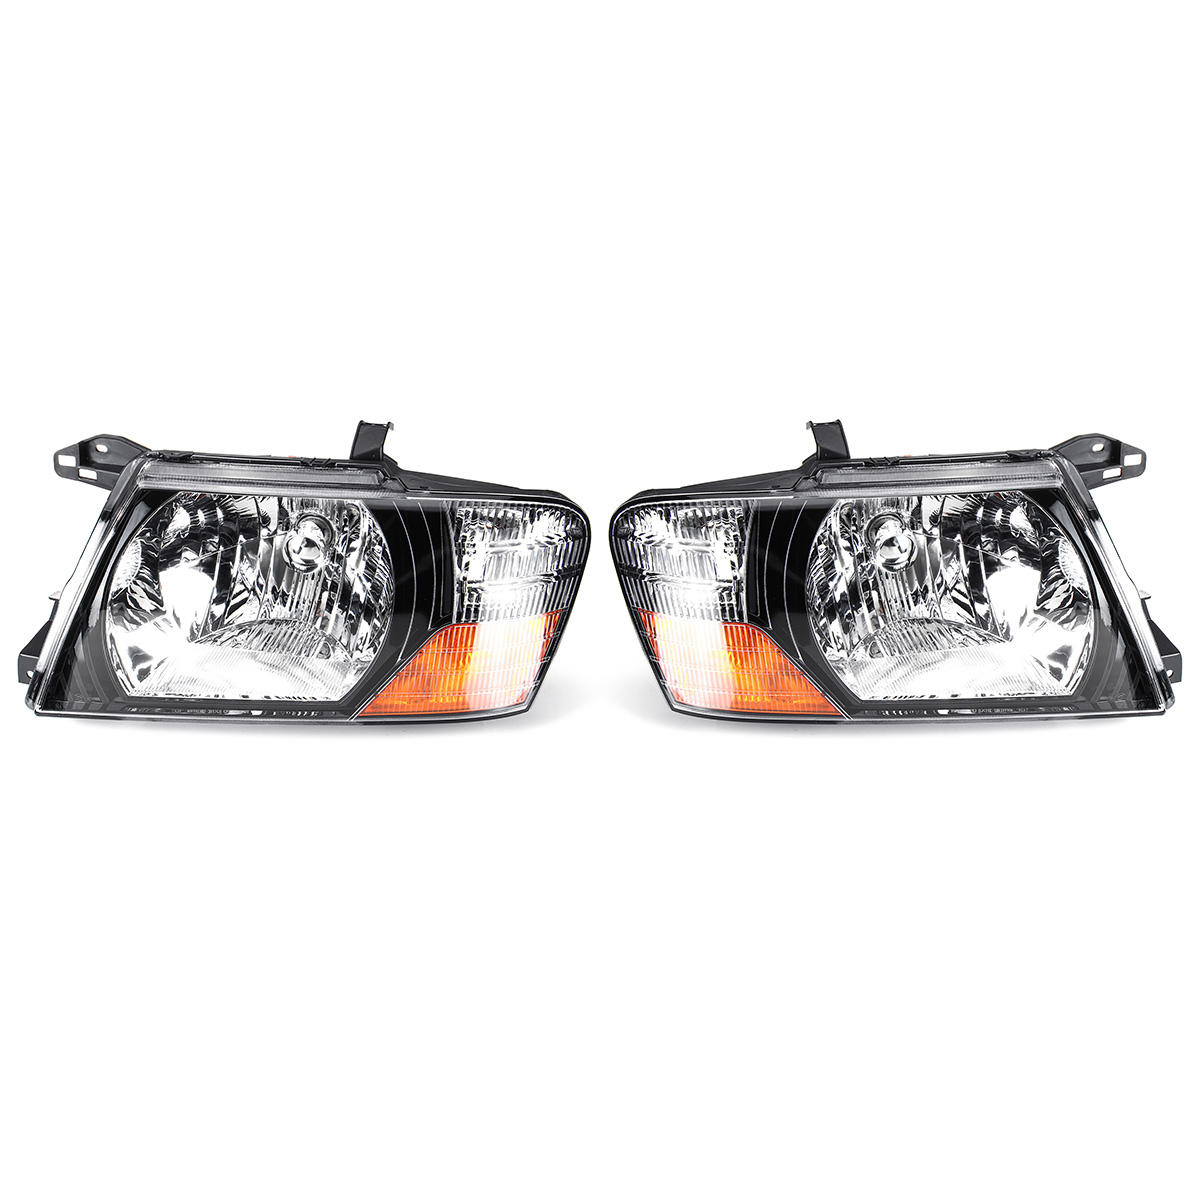 Car Front Headlight Head Lamp Assembly Glass Lens Cover Pair for Mitsubishi Pajero Montero 2000-2006